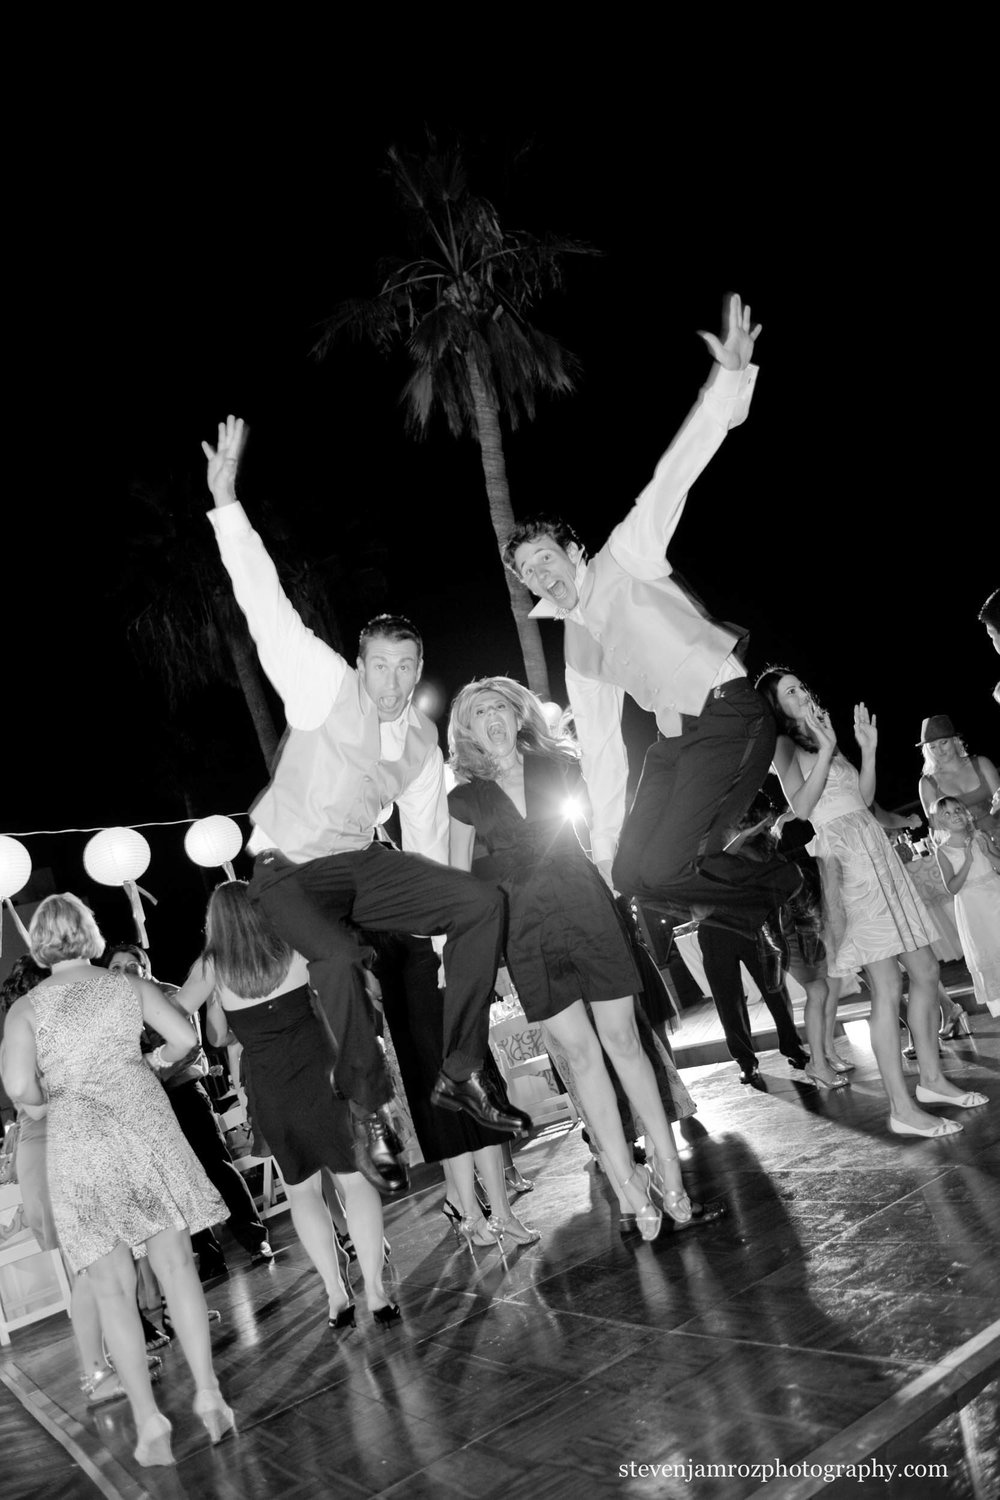 jumping-groomsmen-during-wedding-reception-raleigh-nc-0882.jpg